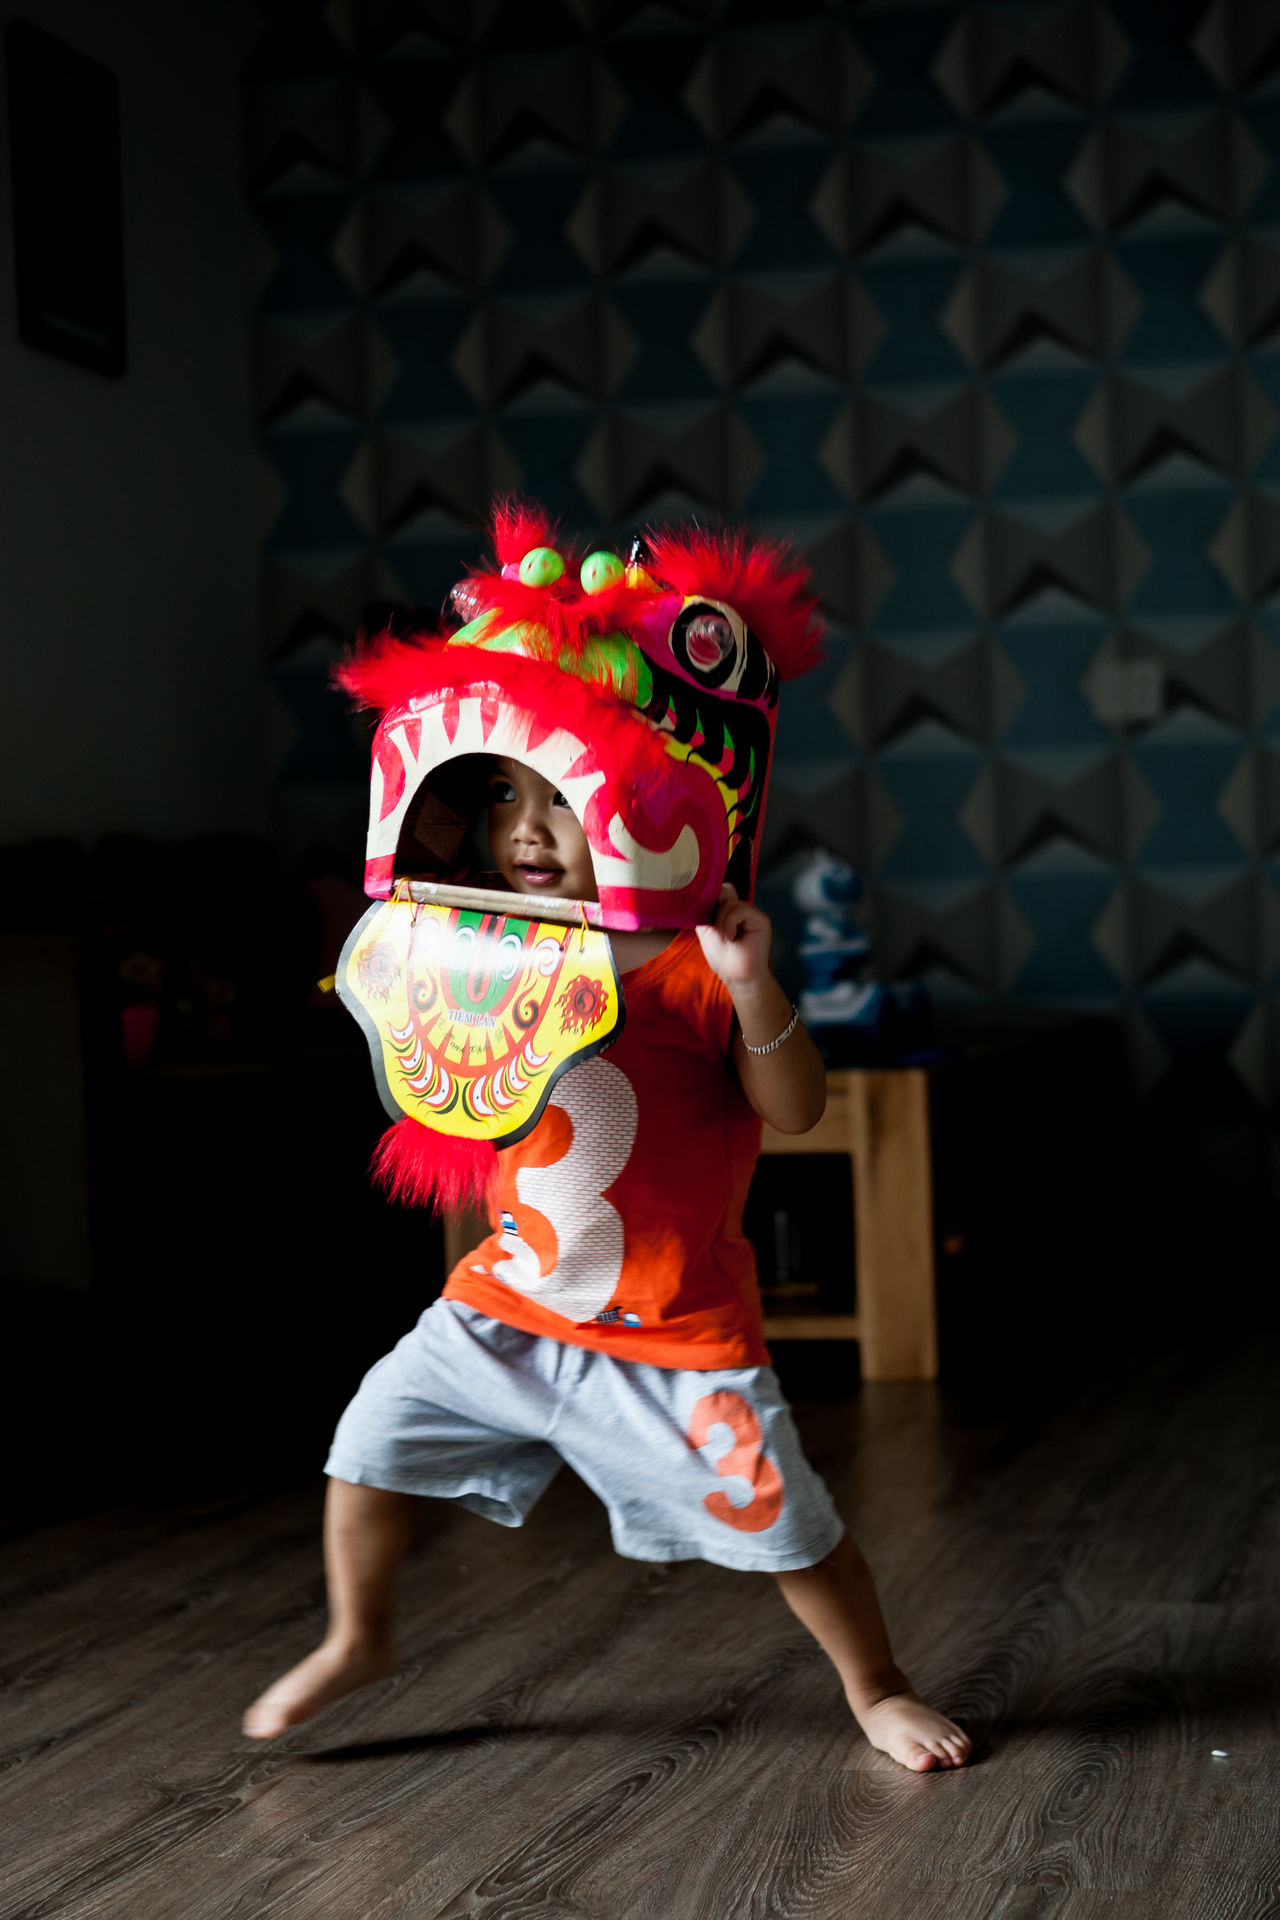 A kid is wearing a lion mask, dancing around his home, like the lion dance that he saw on Pagoda. Child Childhood Costume Dancing Full Length Fun Habit Indoors  Kids Playing Lion Dance One Person Performance Real People The Portraitist - 2017 EyeEm Awards